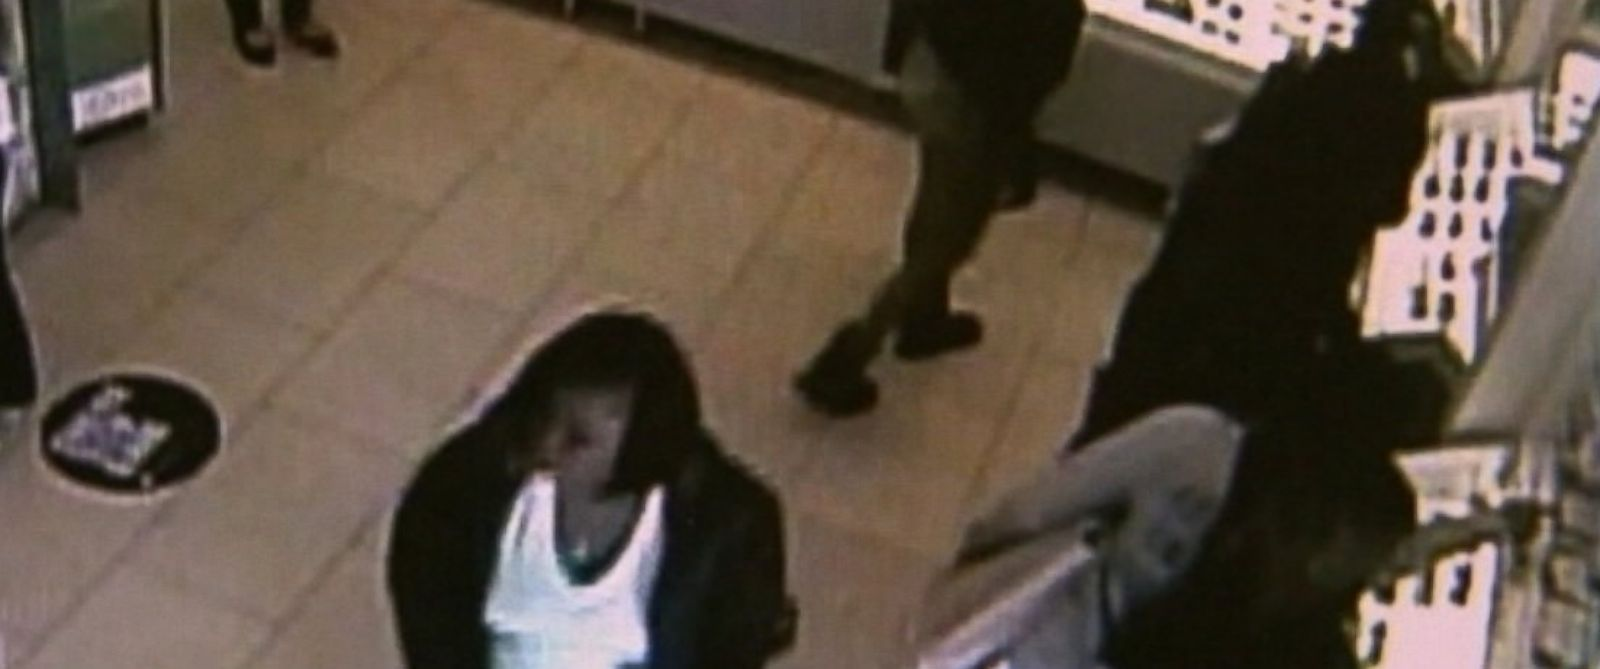 PHOTO: The Los Angeles County Sheriffs Department released surveillance video in hopes of tracking down a group of women who stole more than $20,000 worth of sunglasses.